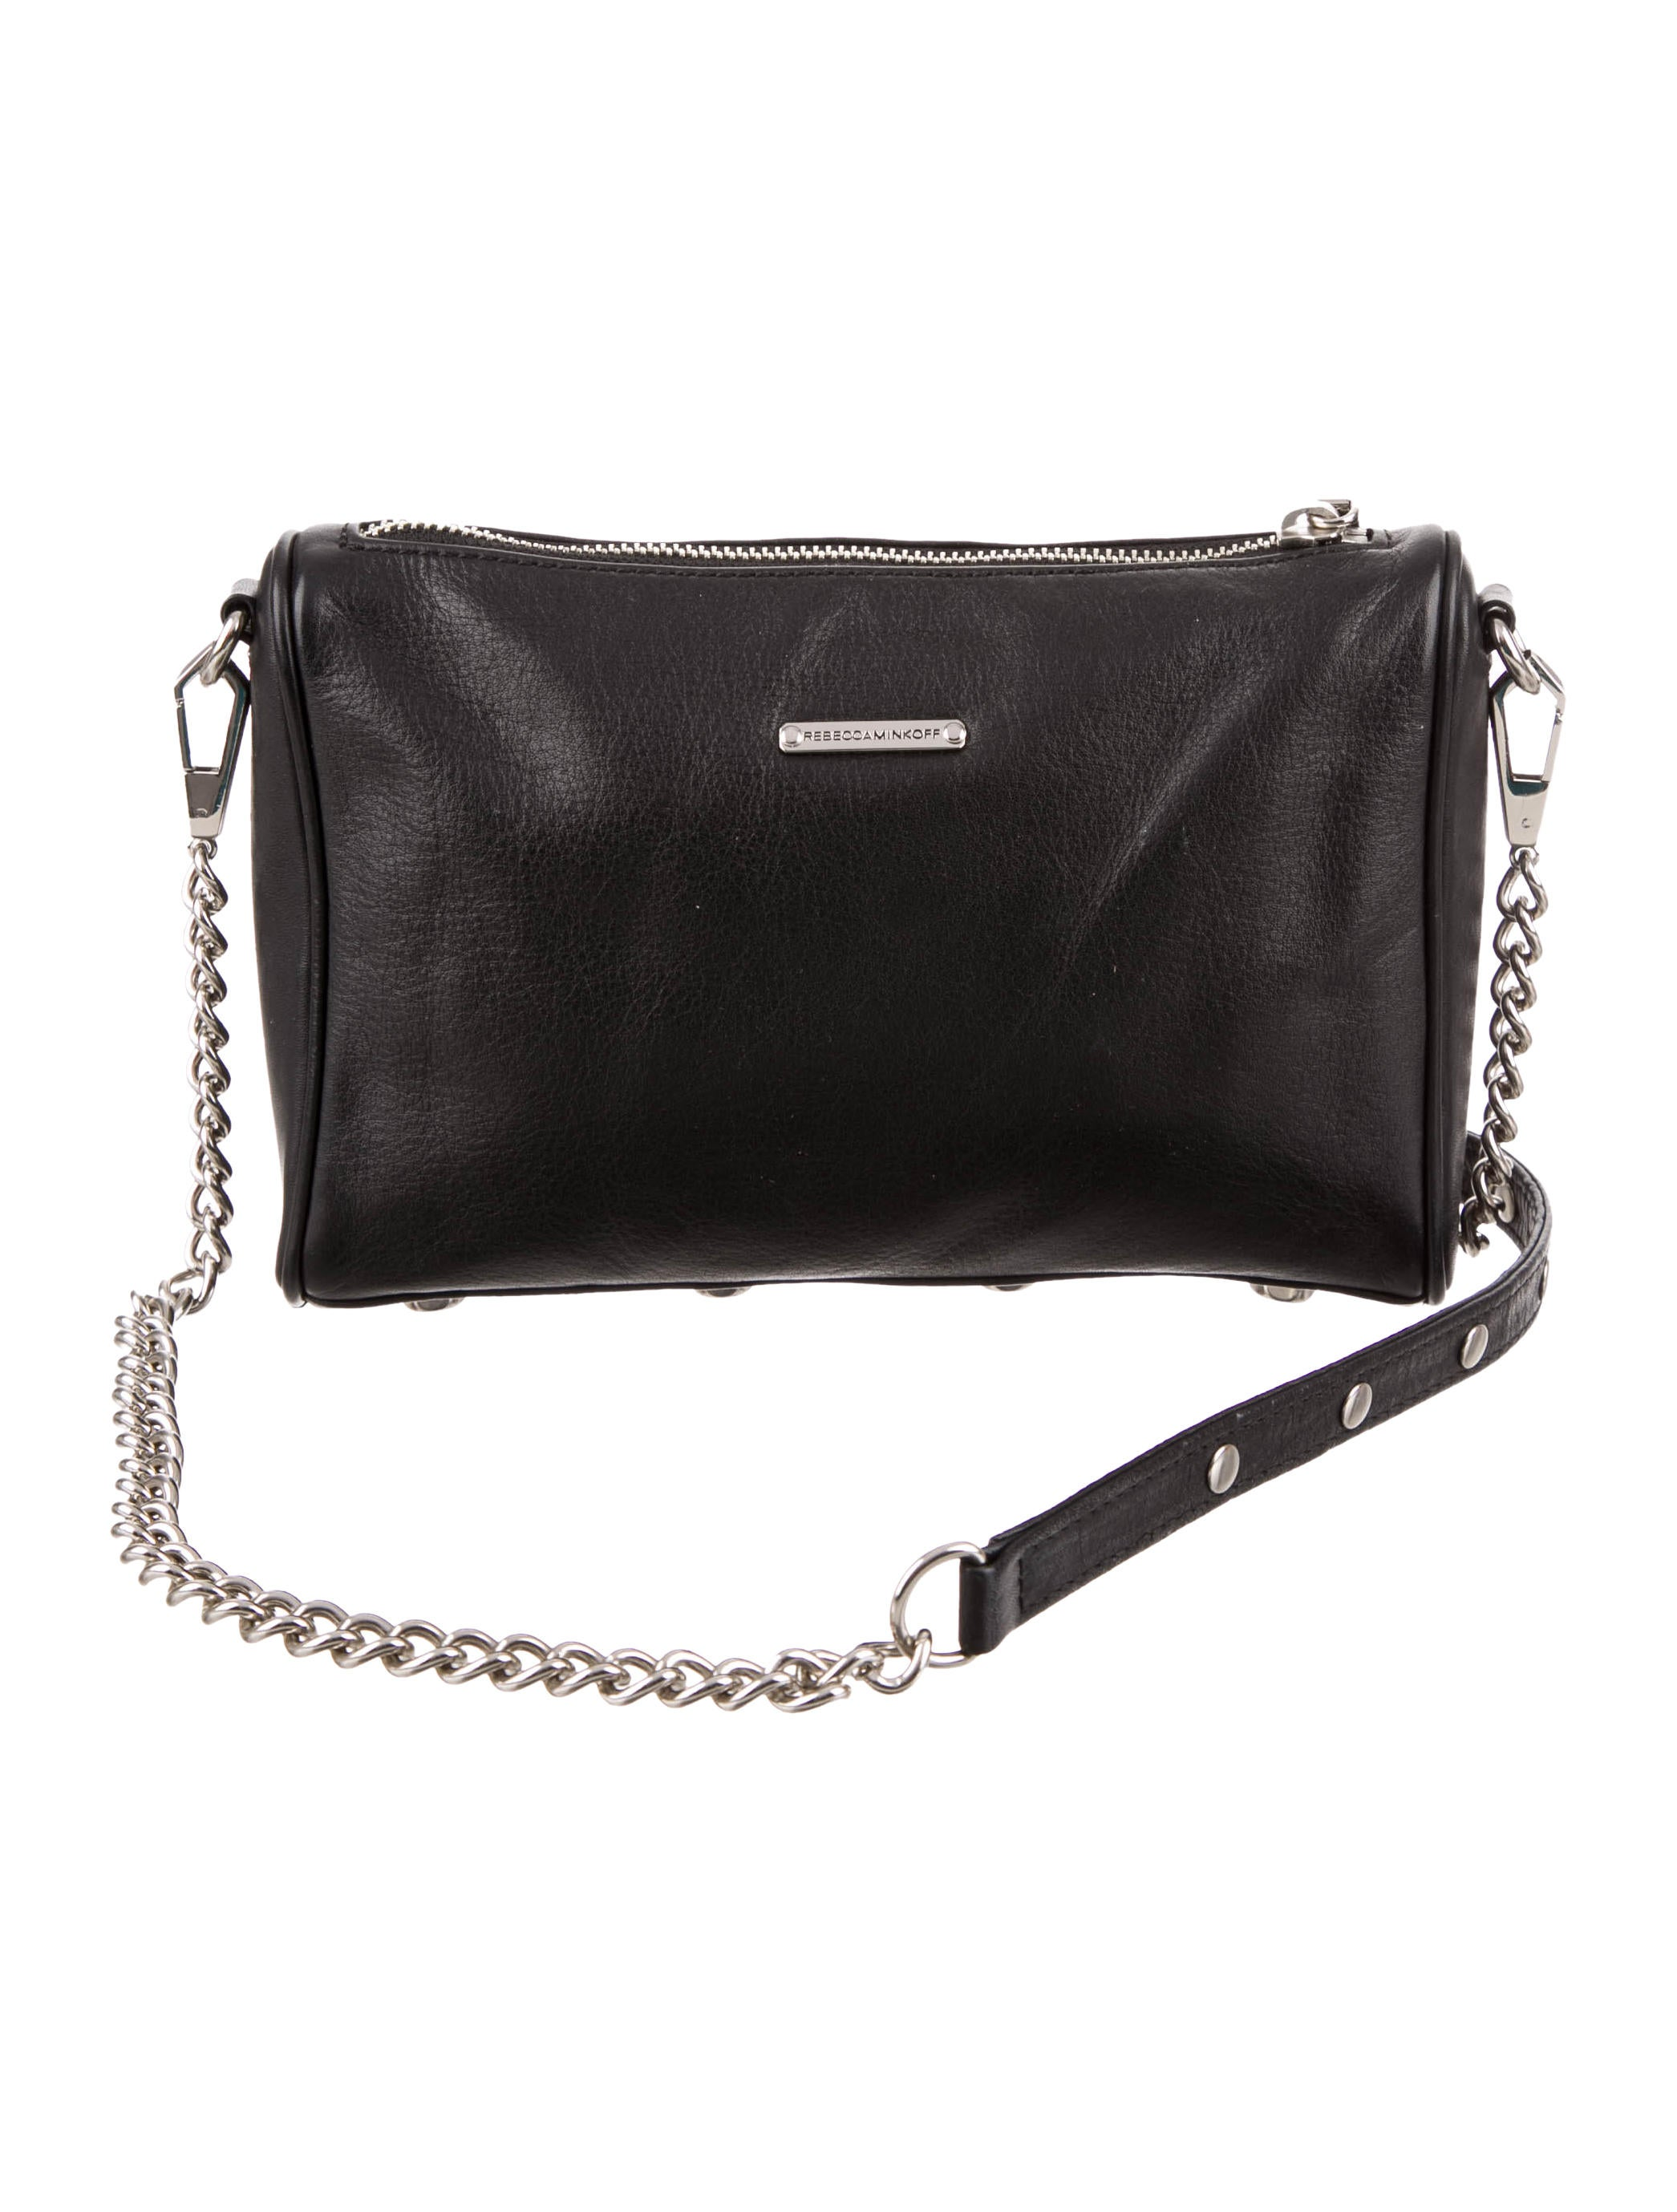 minkoff moto 3 zip crossbody bag handbags